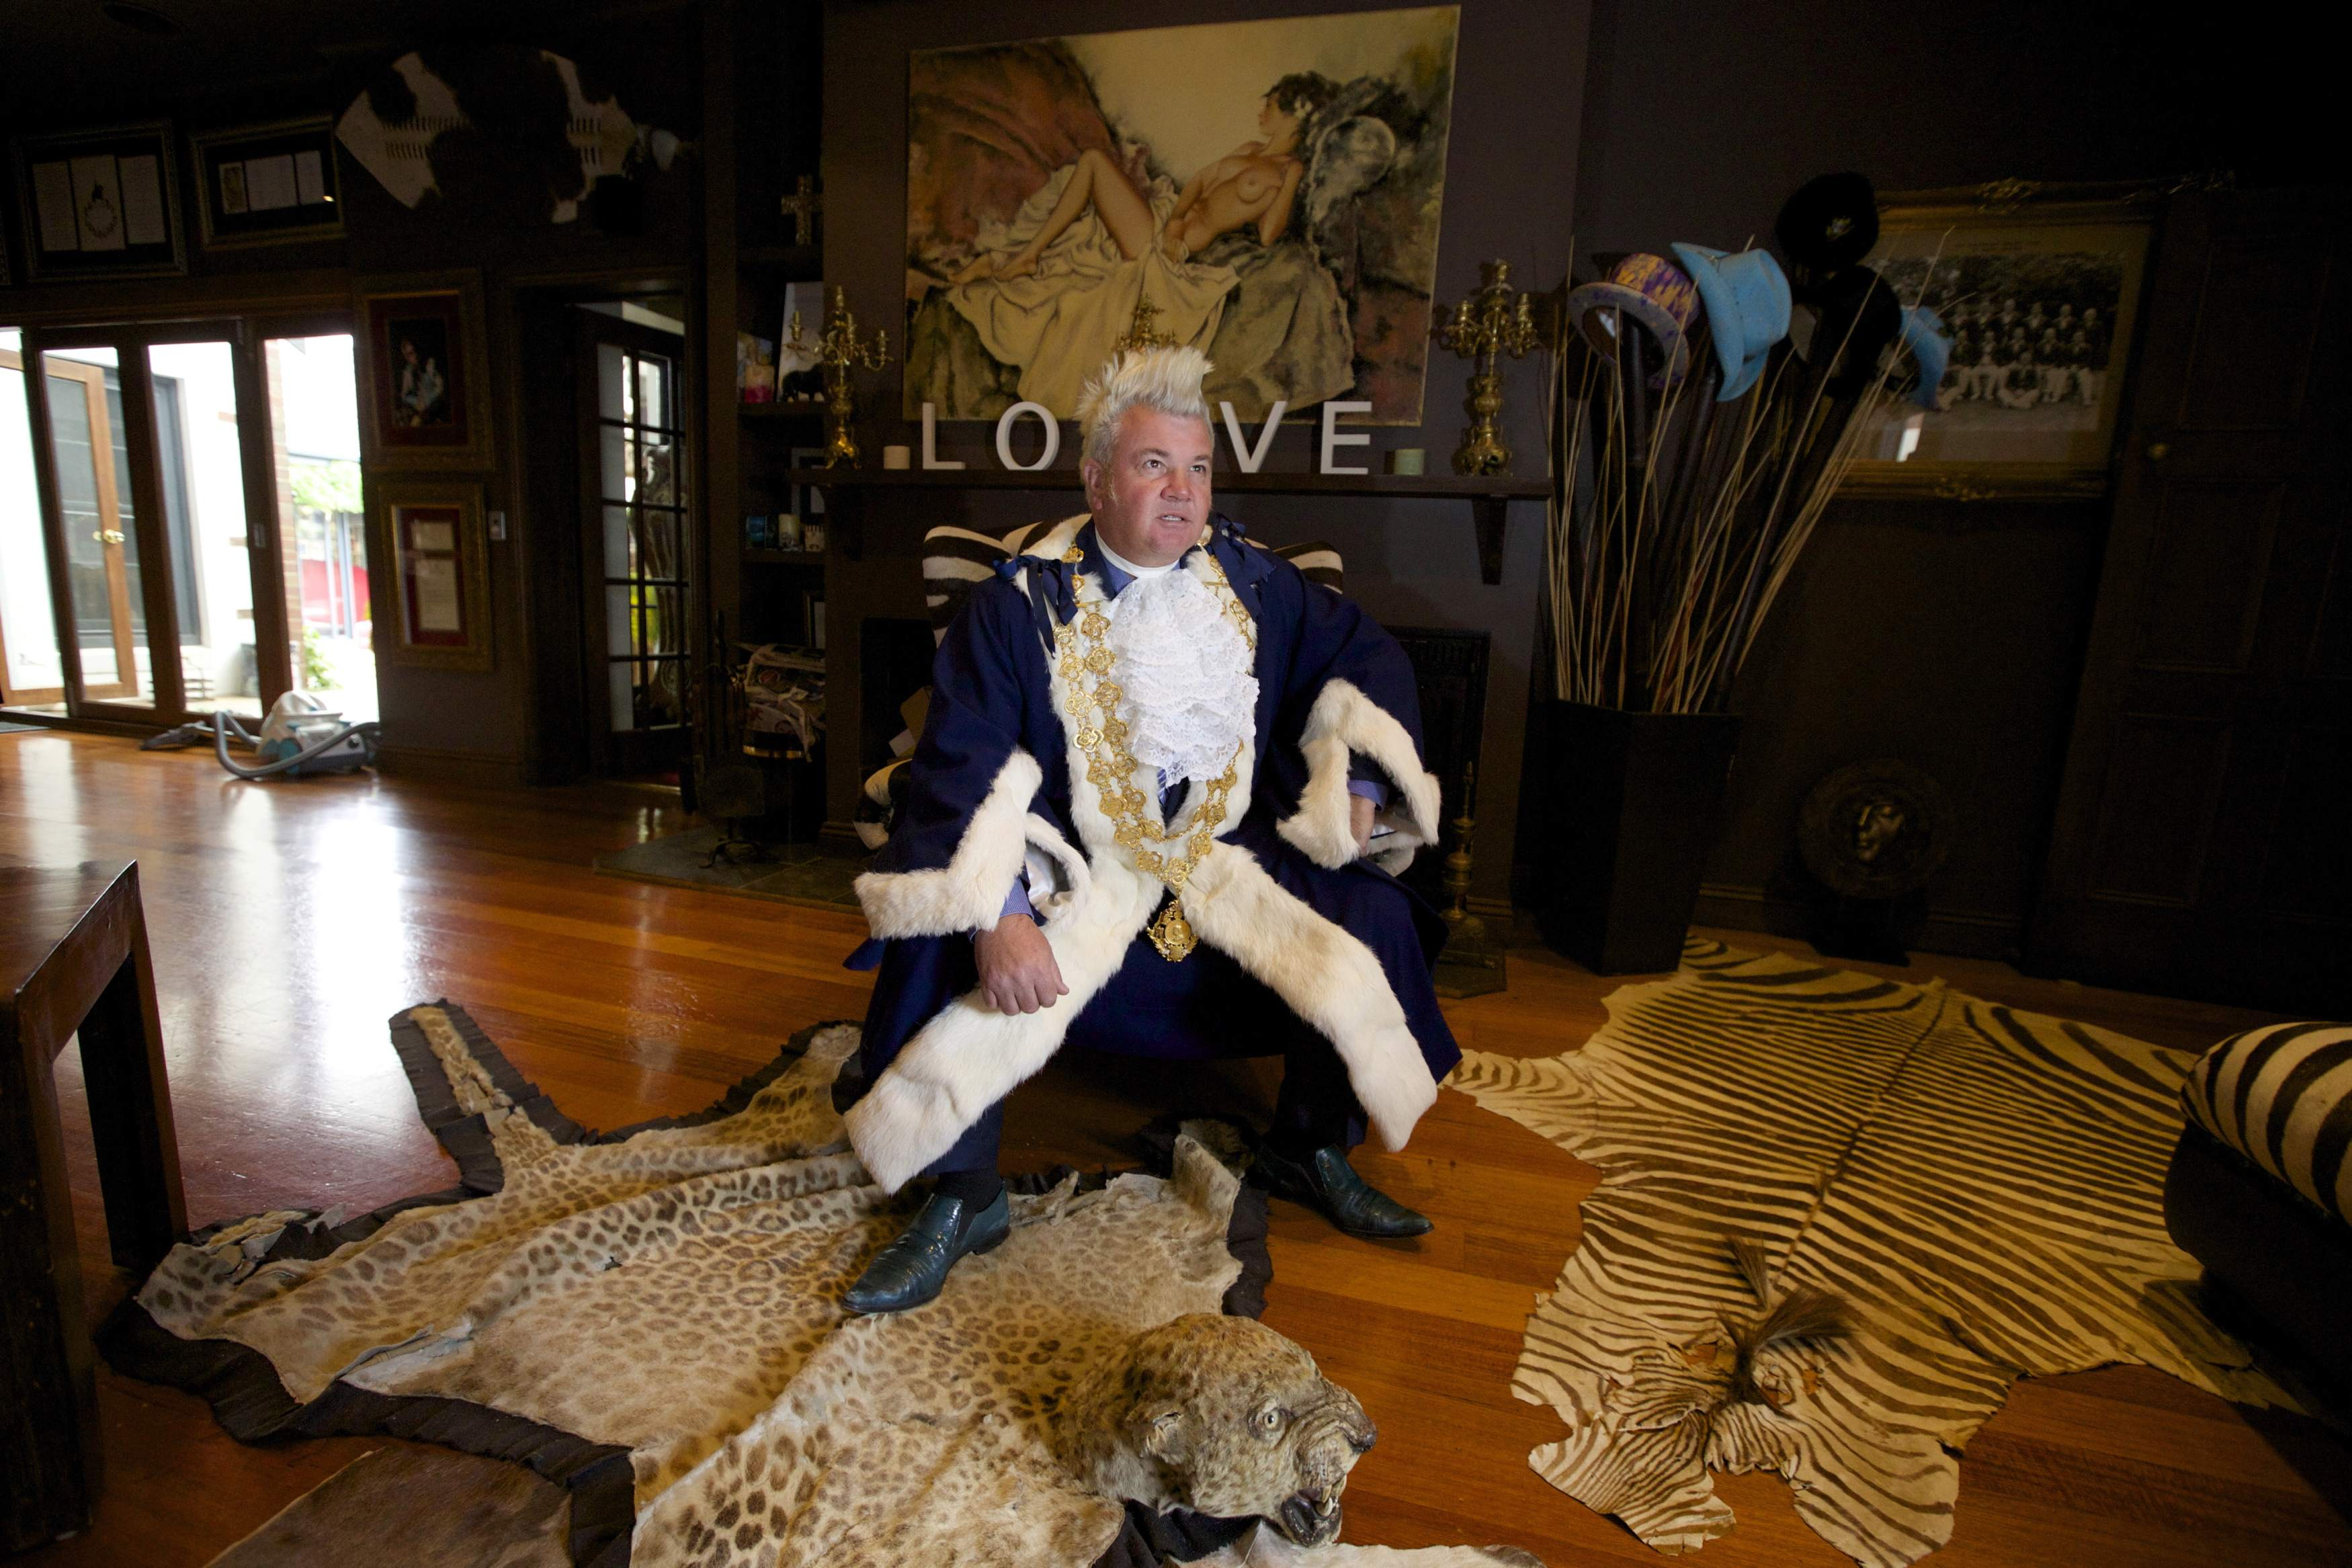 Newly Elected Geelong Mayor Darryn Lyons Poses For A Photograph In His Mayoral Robes In The Living Room Of His Home In Geelong